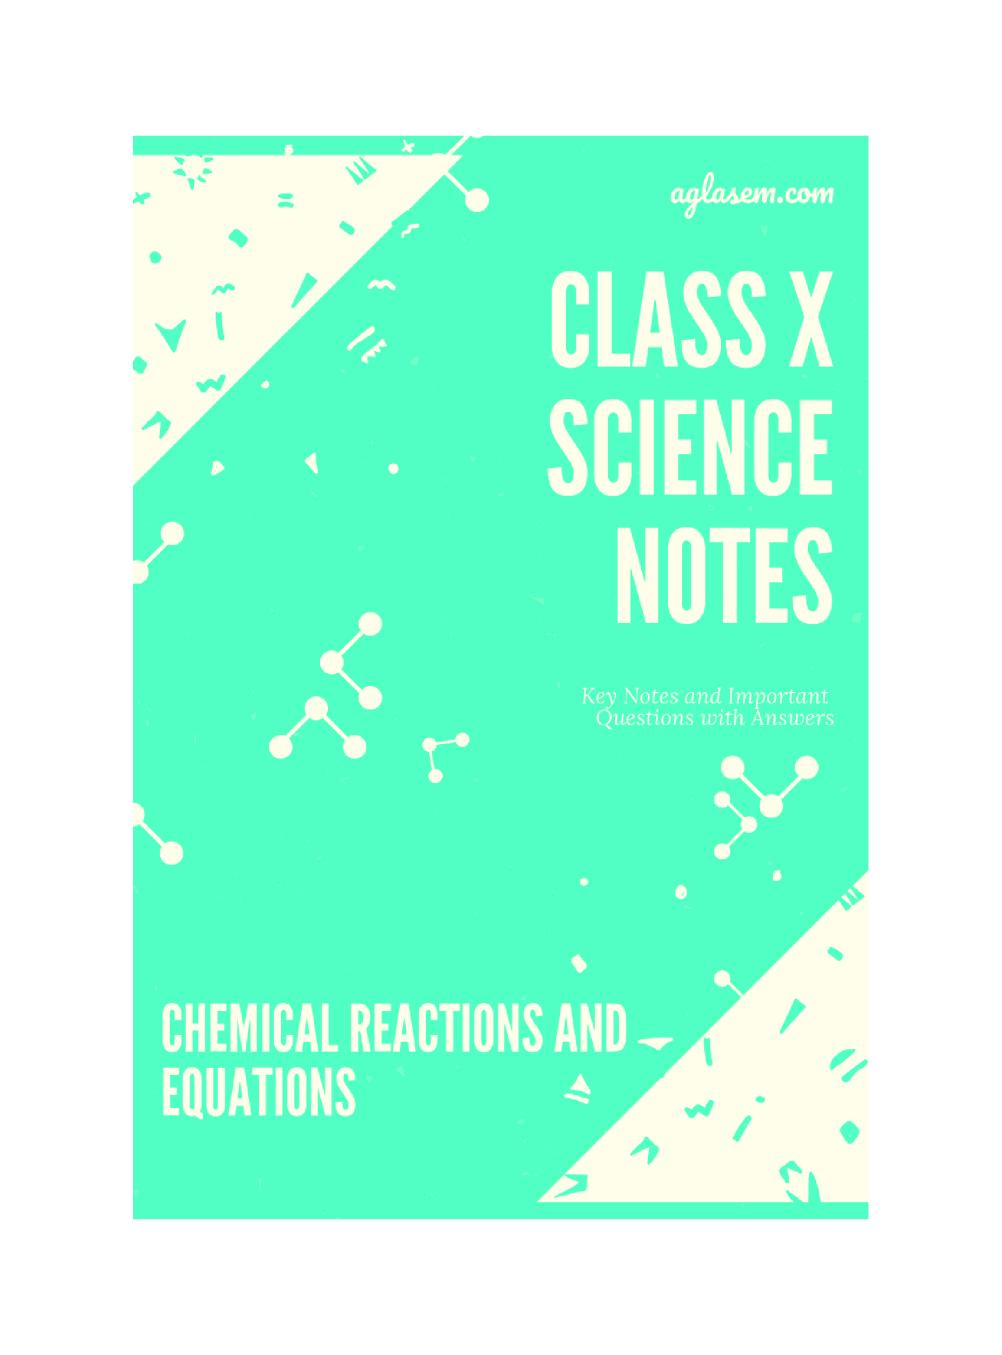 Class 10 Science Chemical Reactions and Equations Notes, Important Questions & Practice Paper